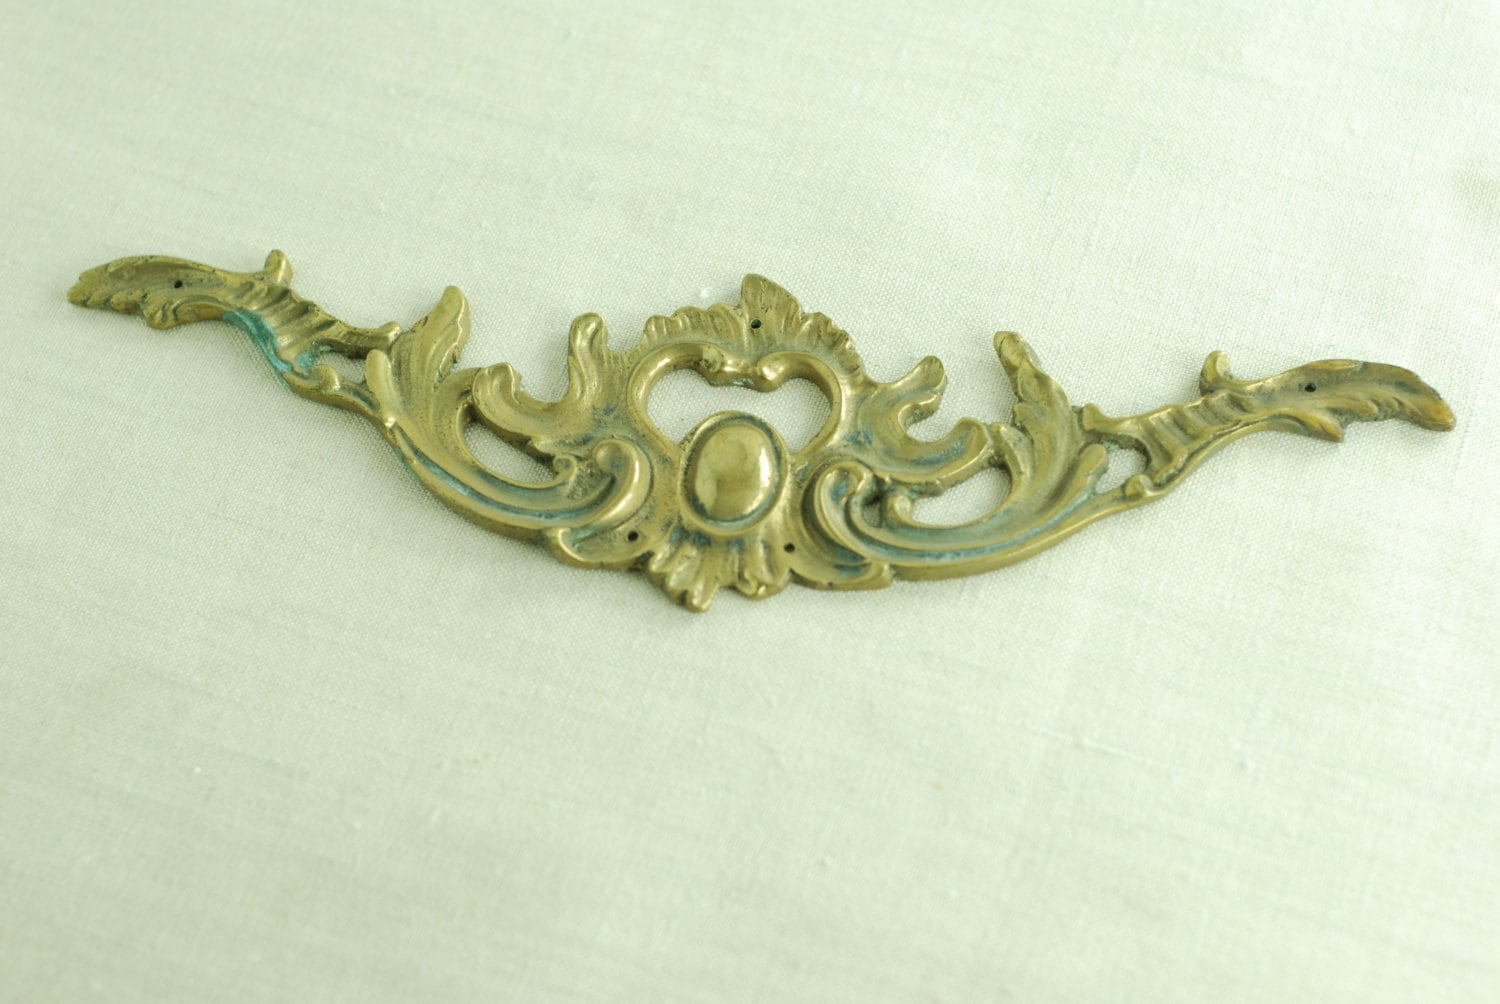 El109 Antique Decorative Furniture Hardware Leaf And Scroll Design French Reproduction